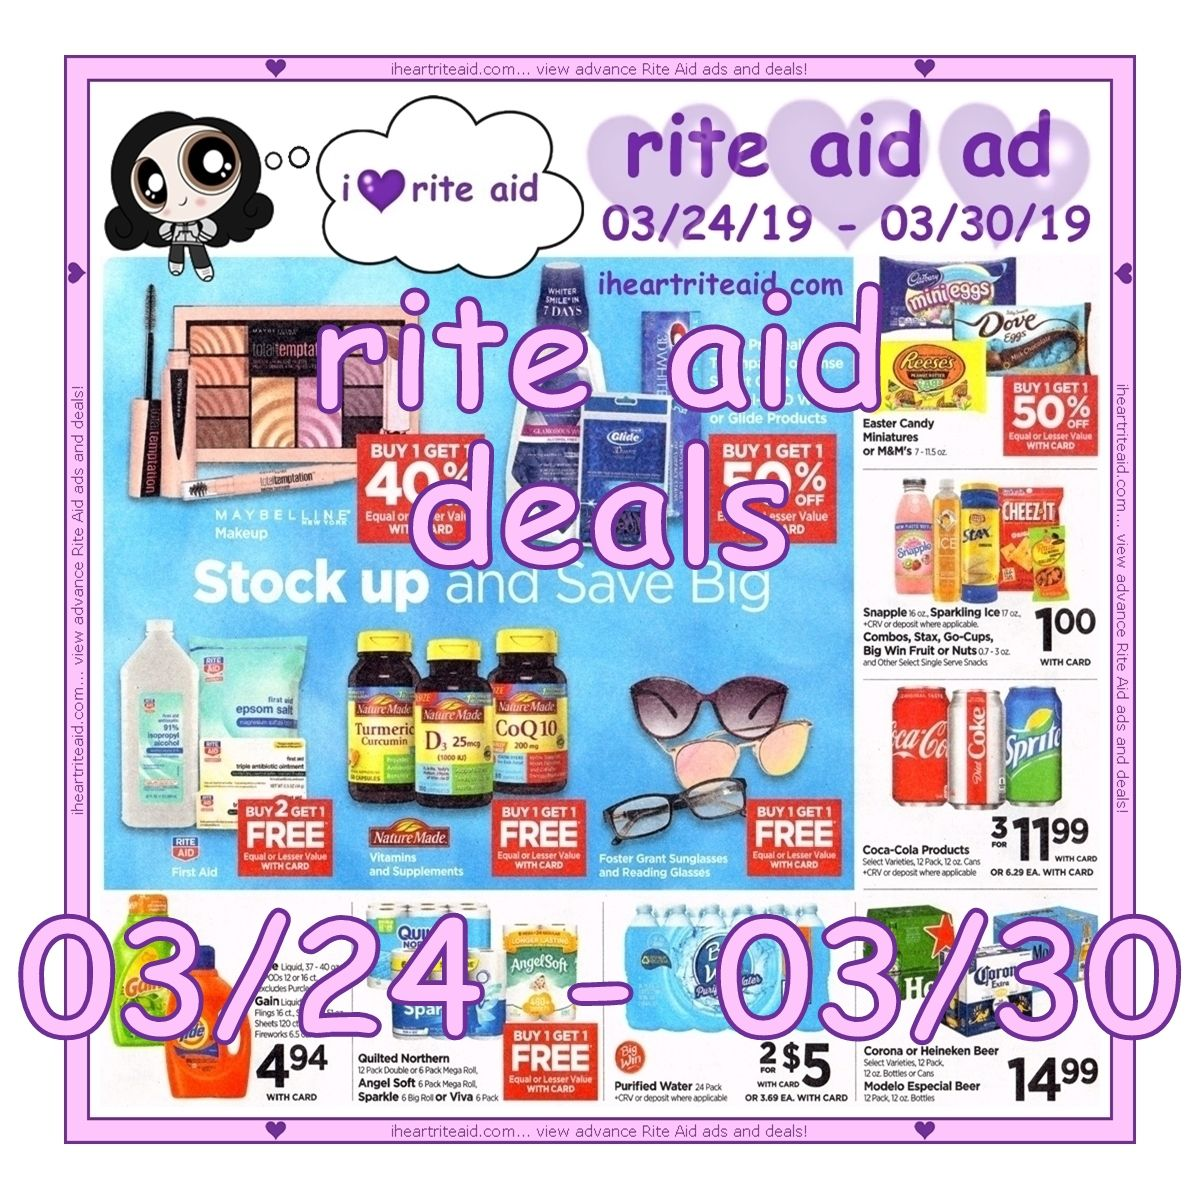 rite aid gift cards available